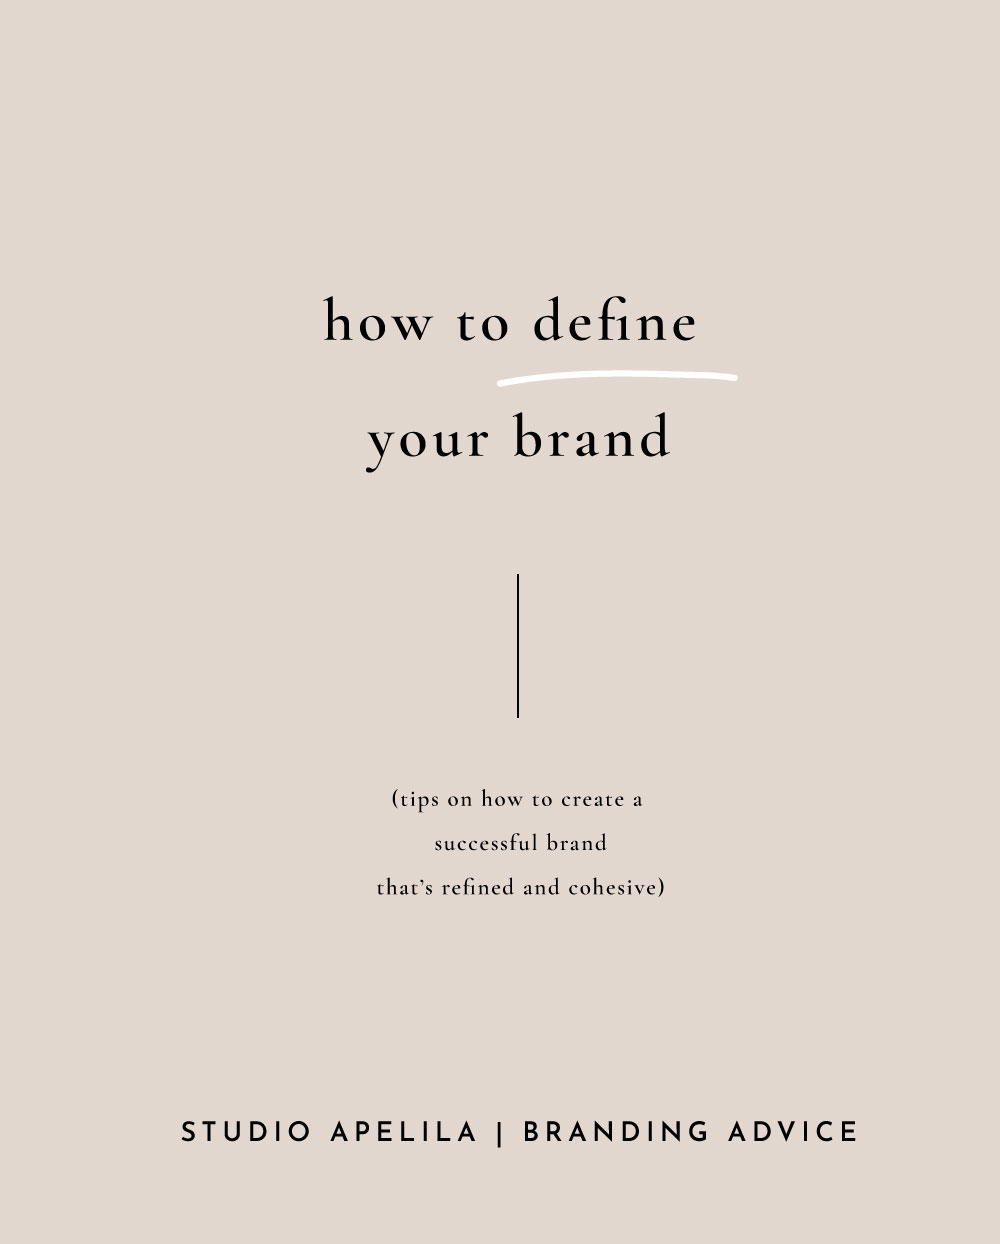 How to define your brand.